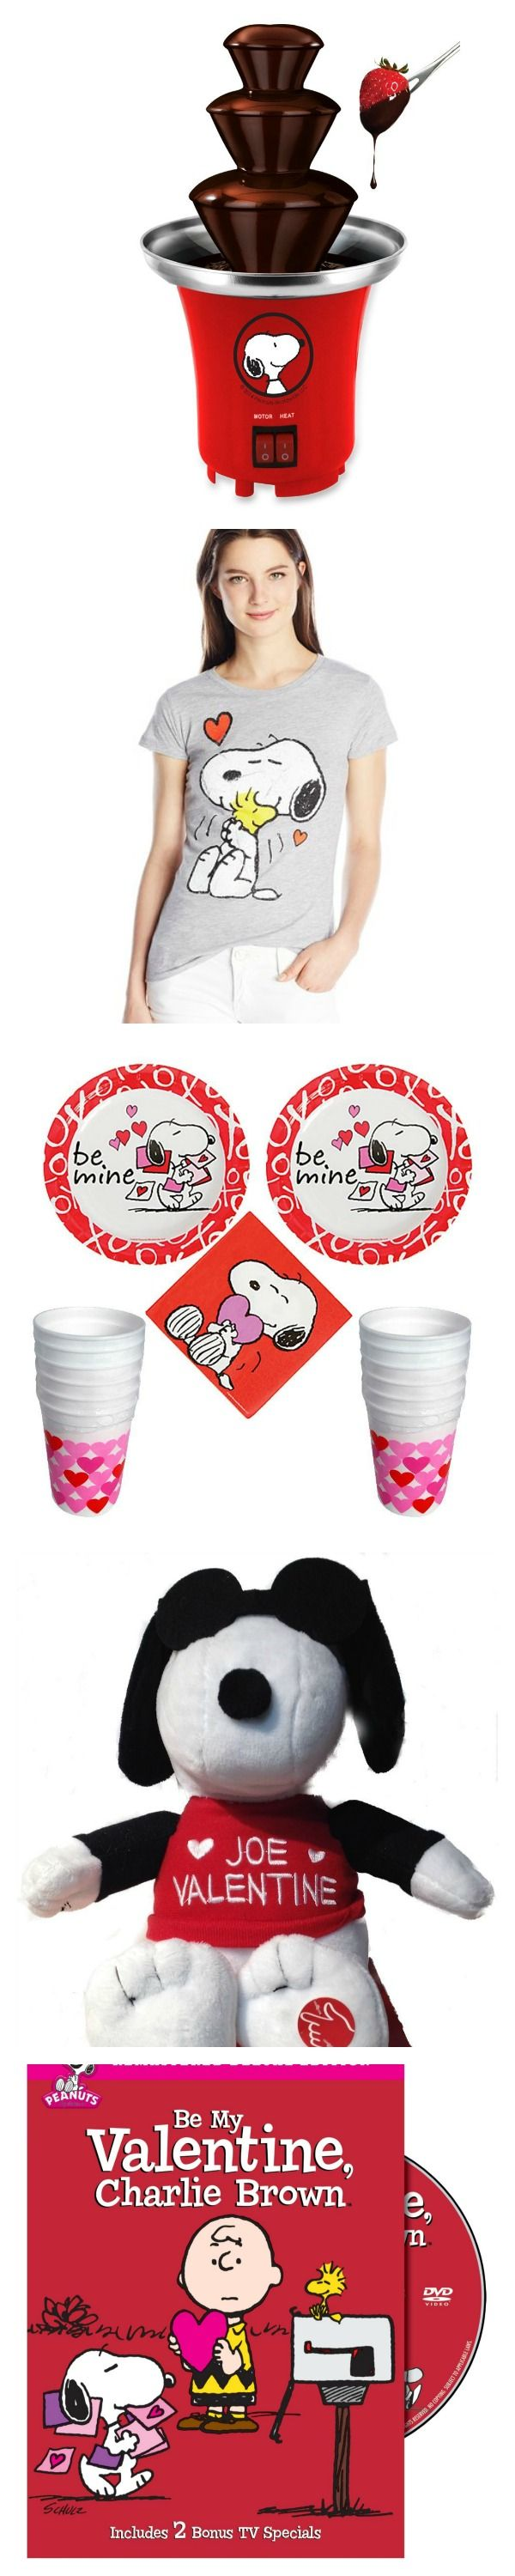 Need a last minute gift for your Peanuts Valentine? We've got great gift ideas for your special Snoopy Valentine's Day celebration. Start shopping at CollectPeanuts.com and help support our site.